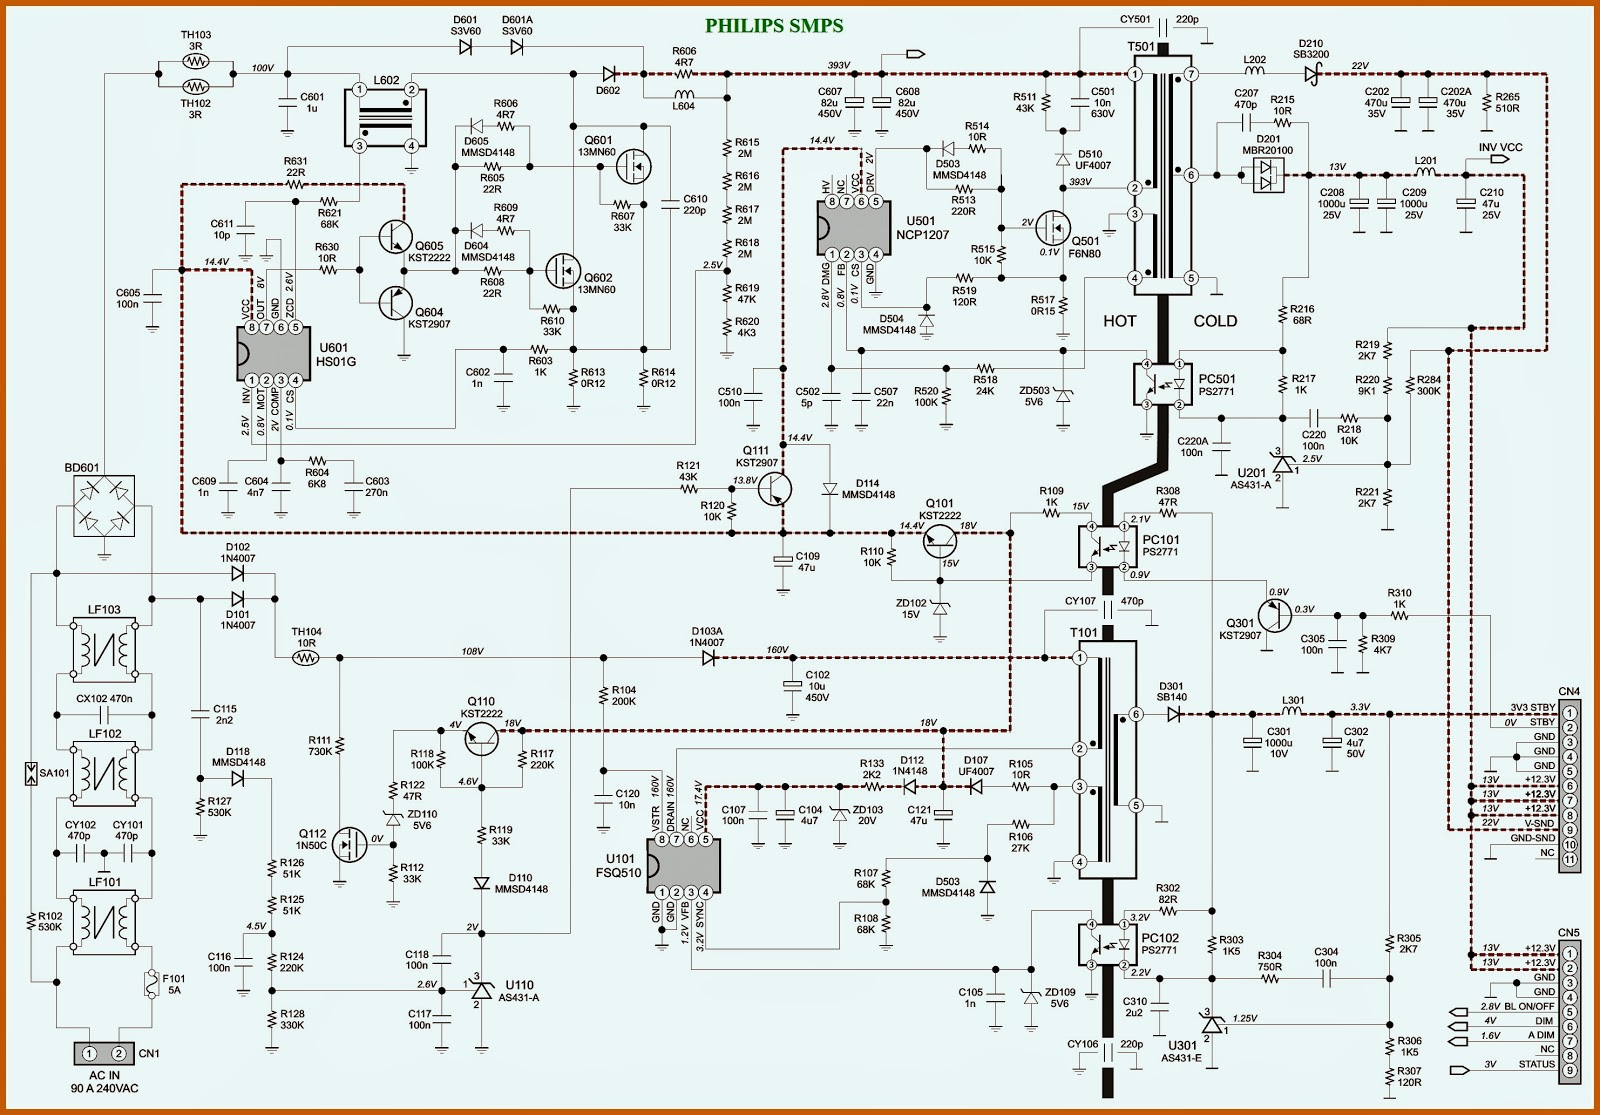 Power Supply Schematic And Board